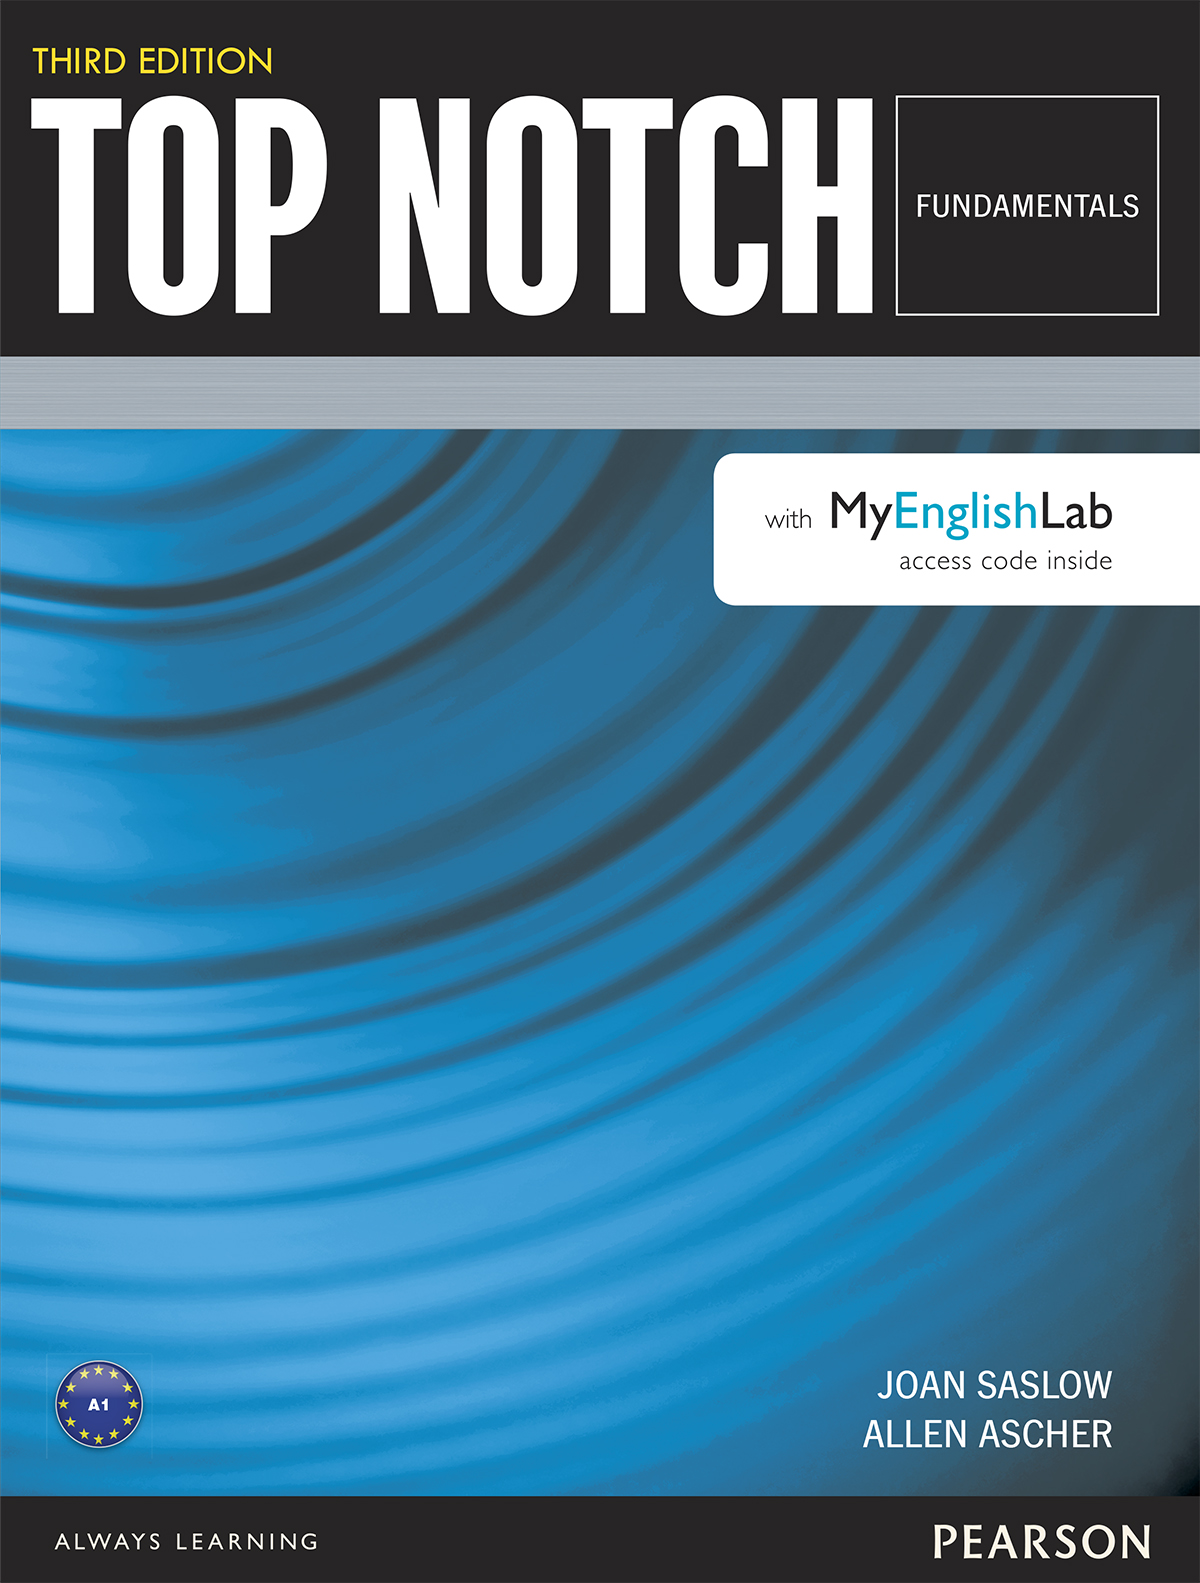 Top Notch Fundamentals 3/e Student eBook with MEL